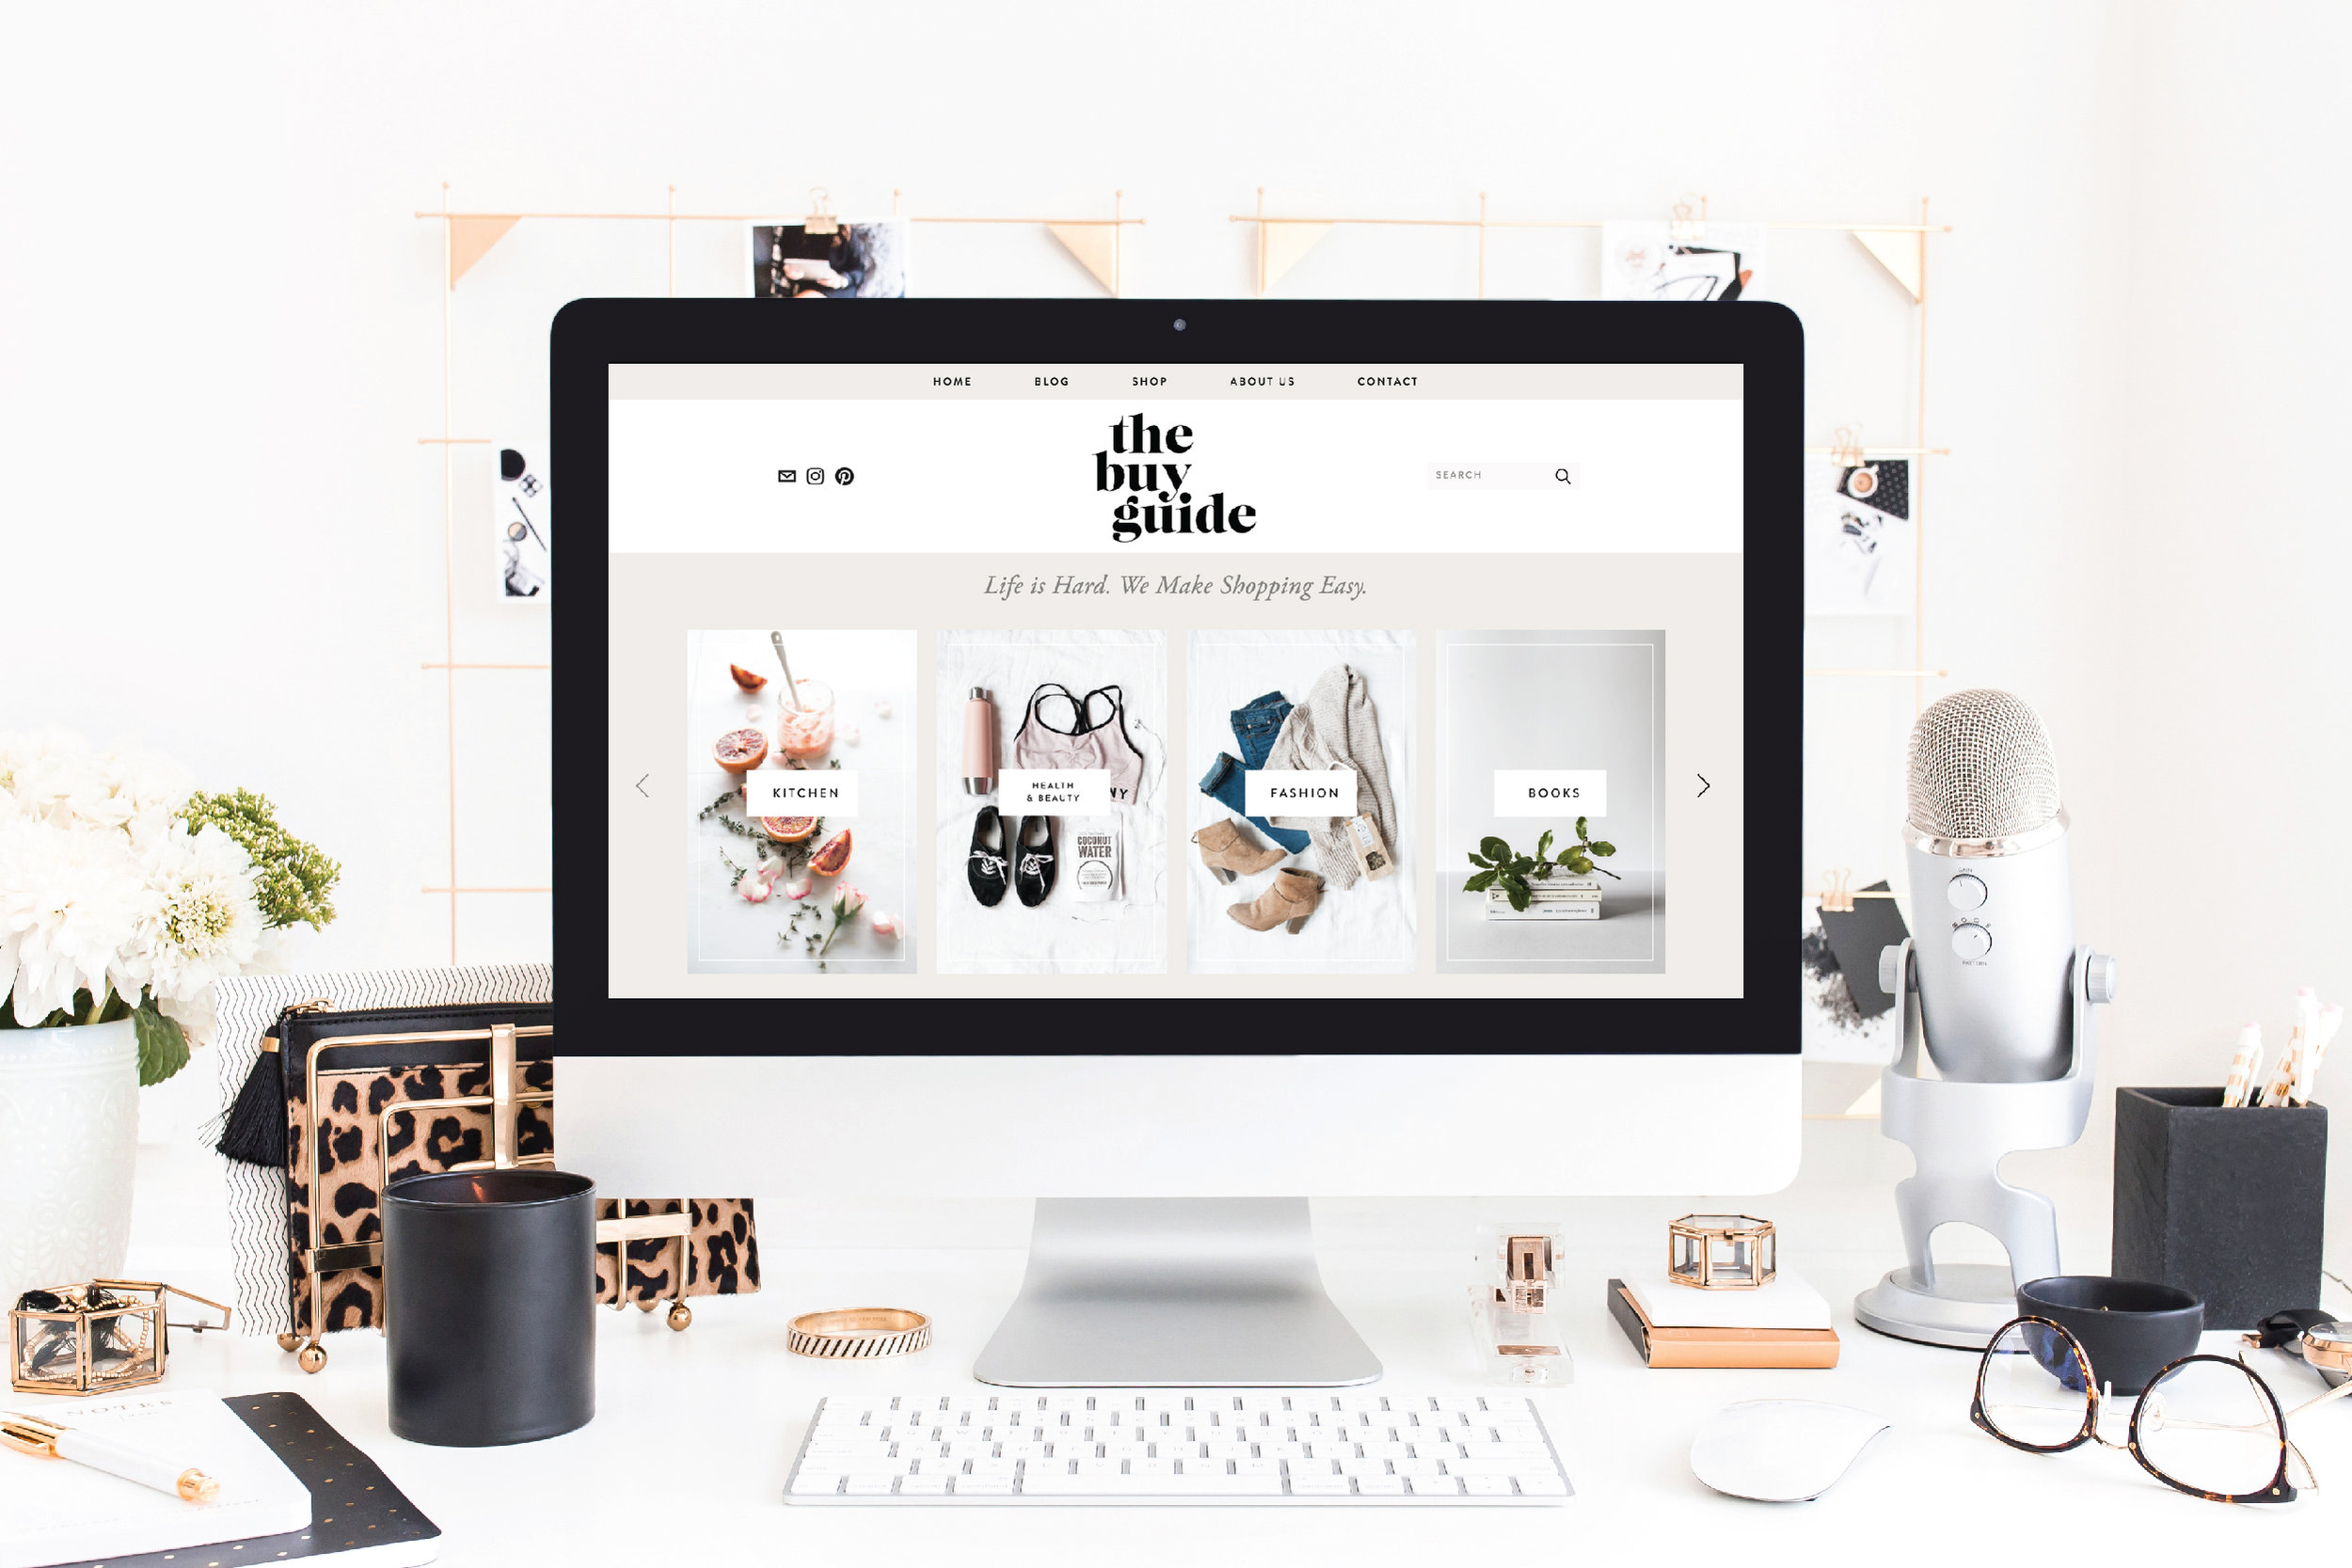 The buy guide: branding + website